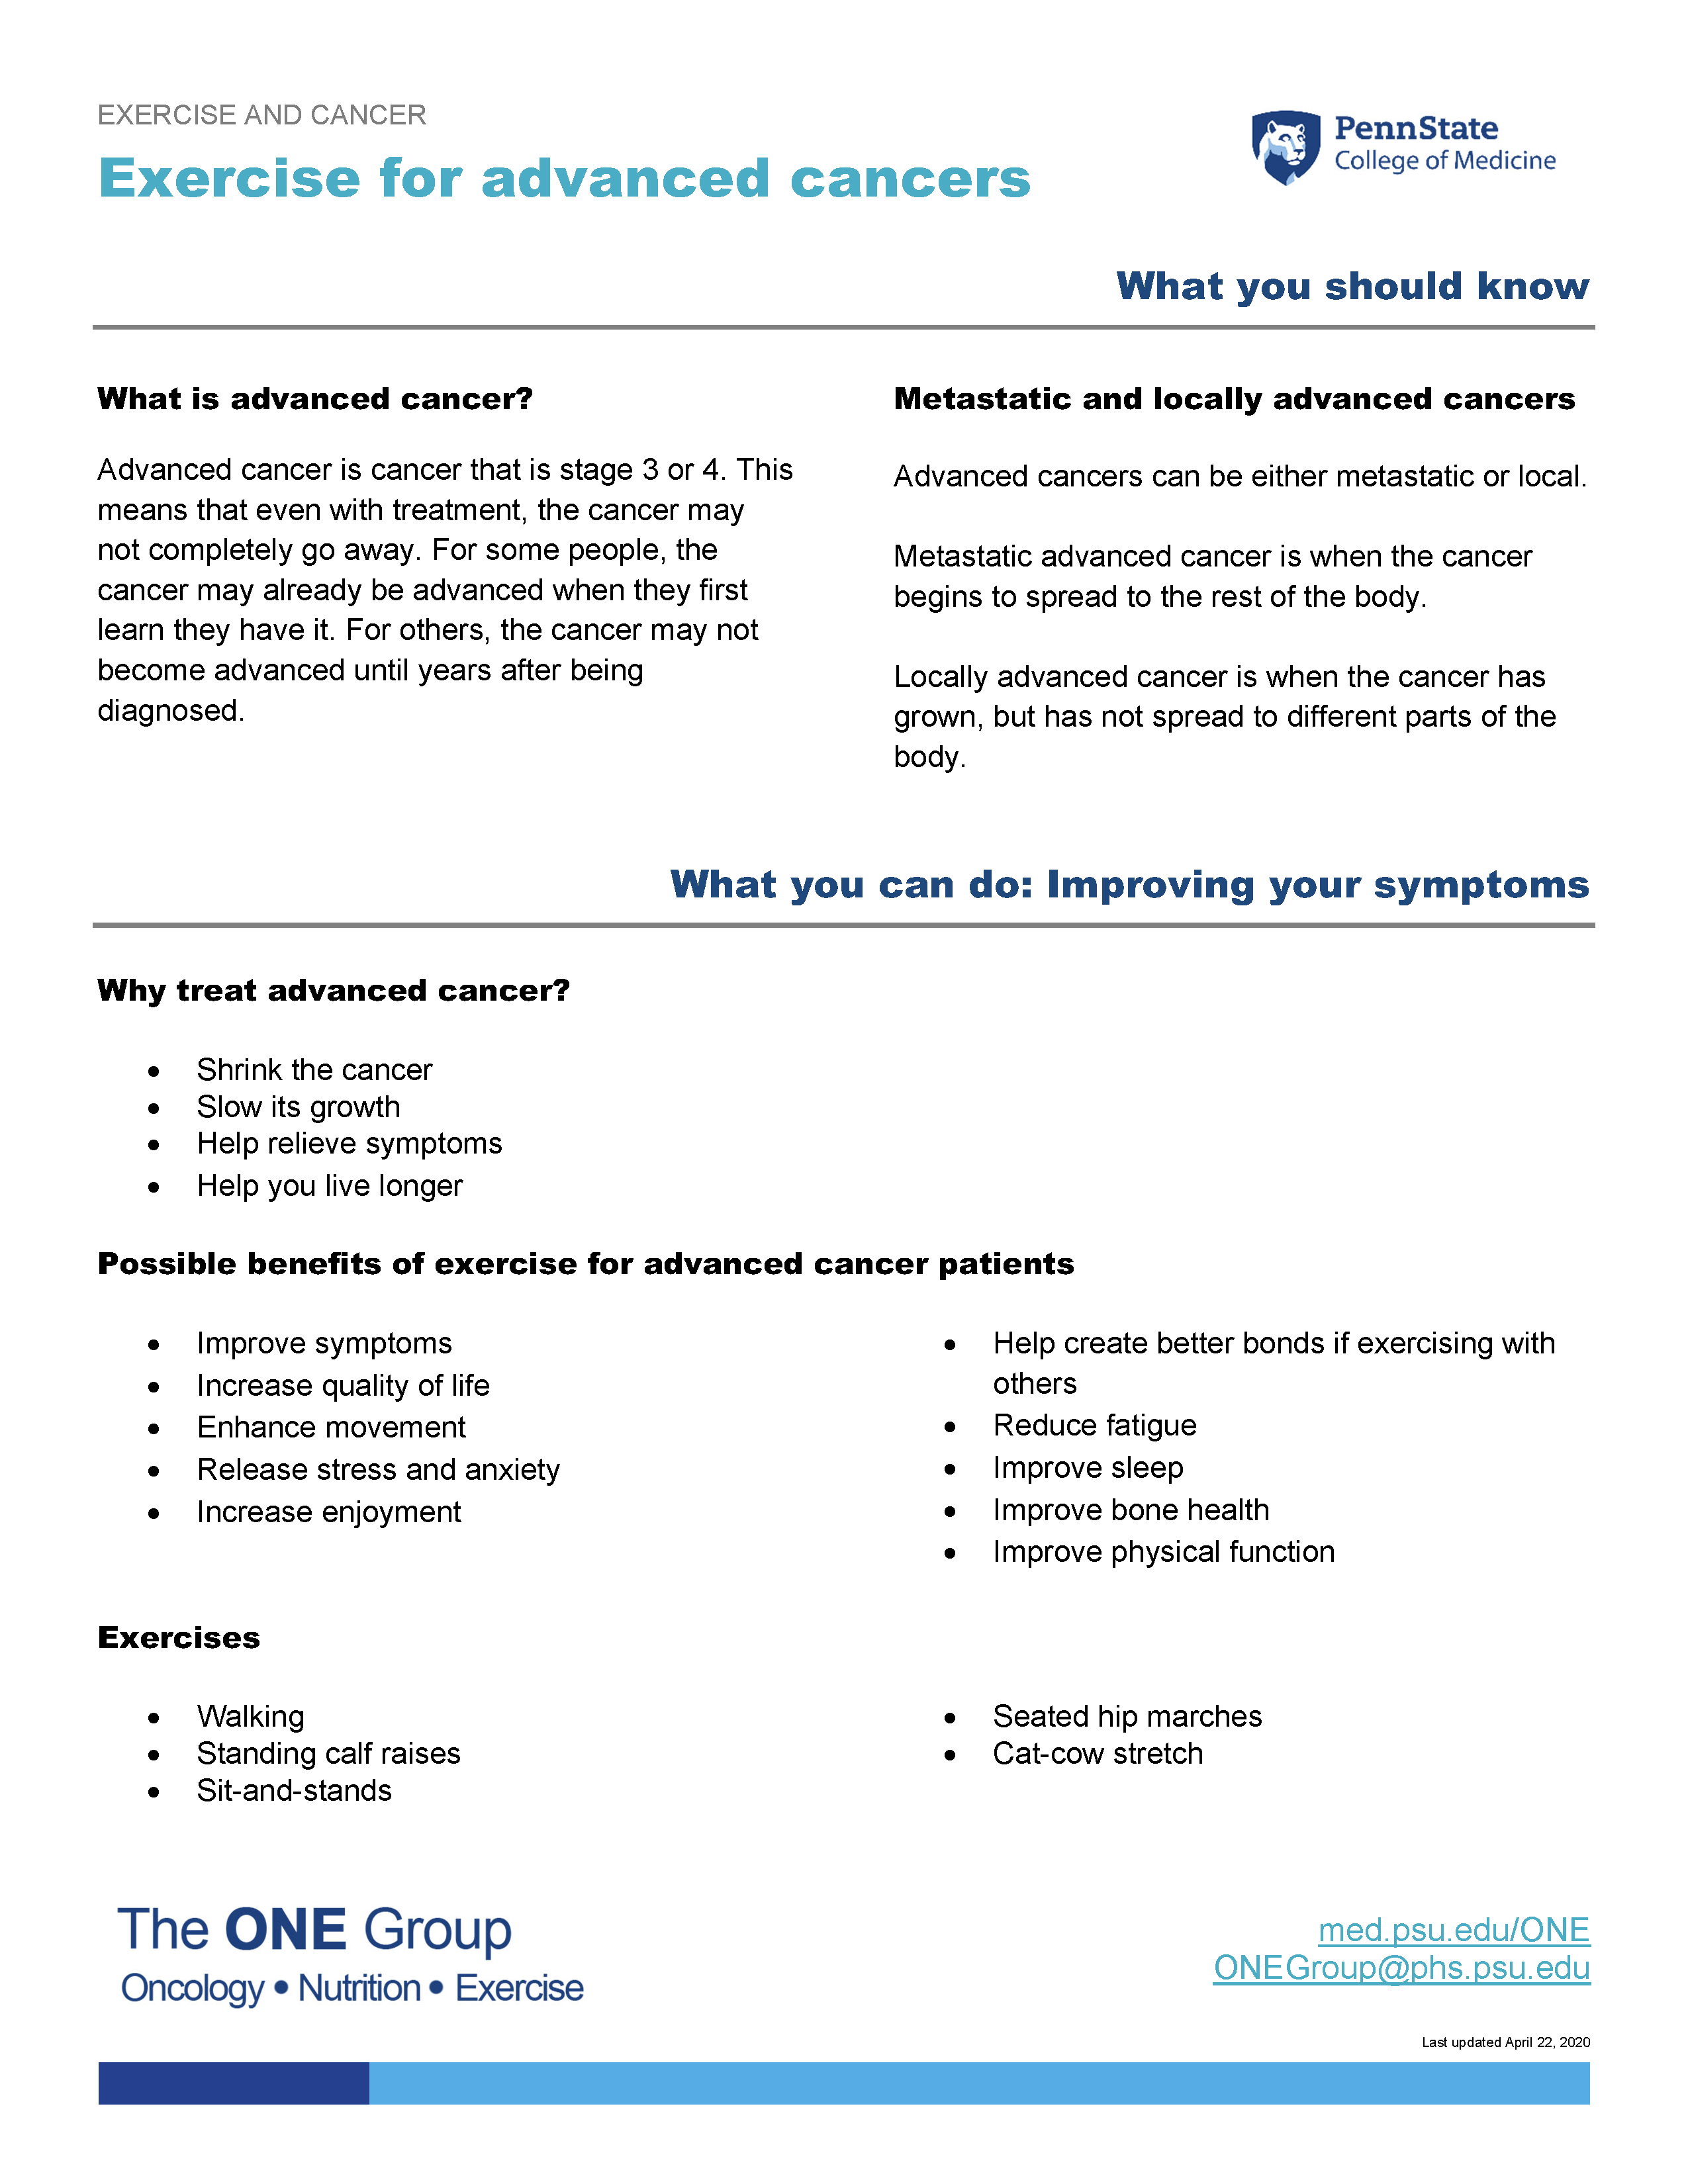 The exercise for advanced cancers guide from The ONE Group includes the information on this page, formatted for print.